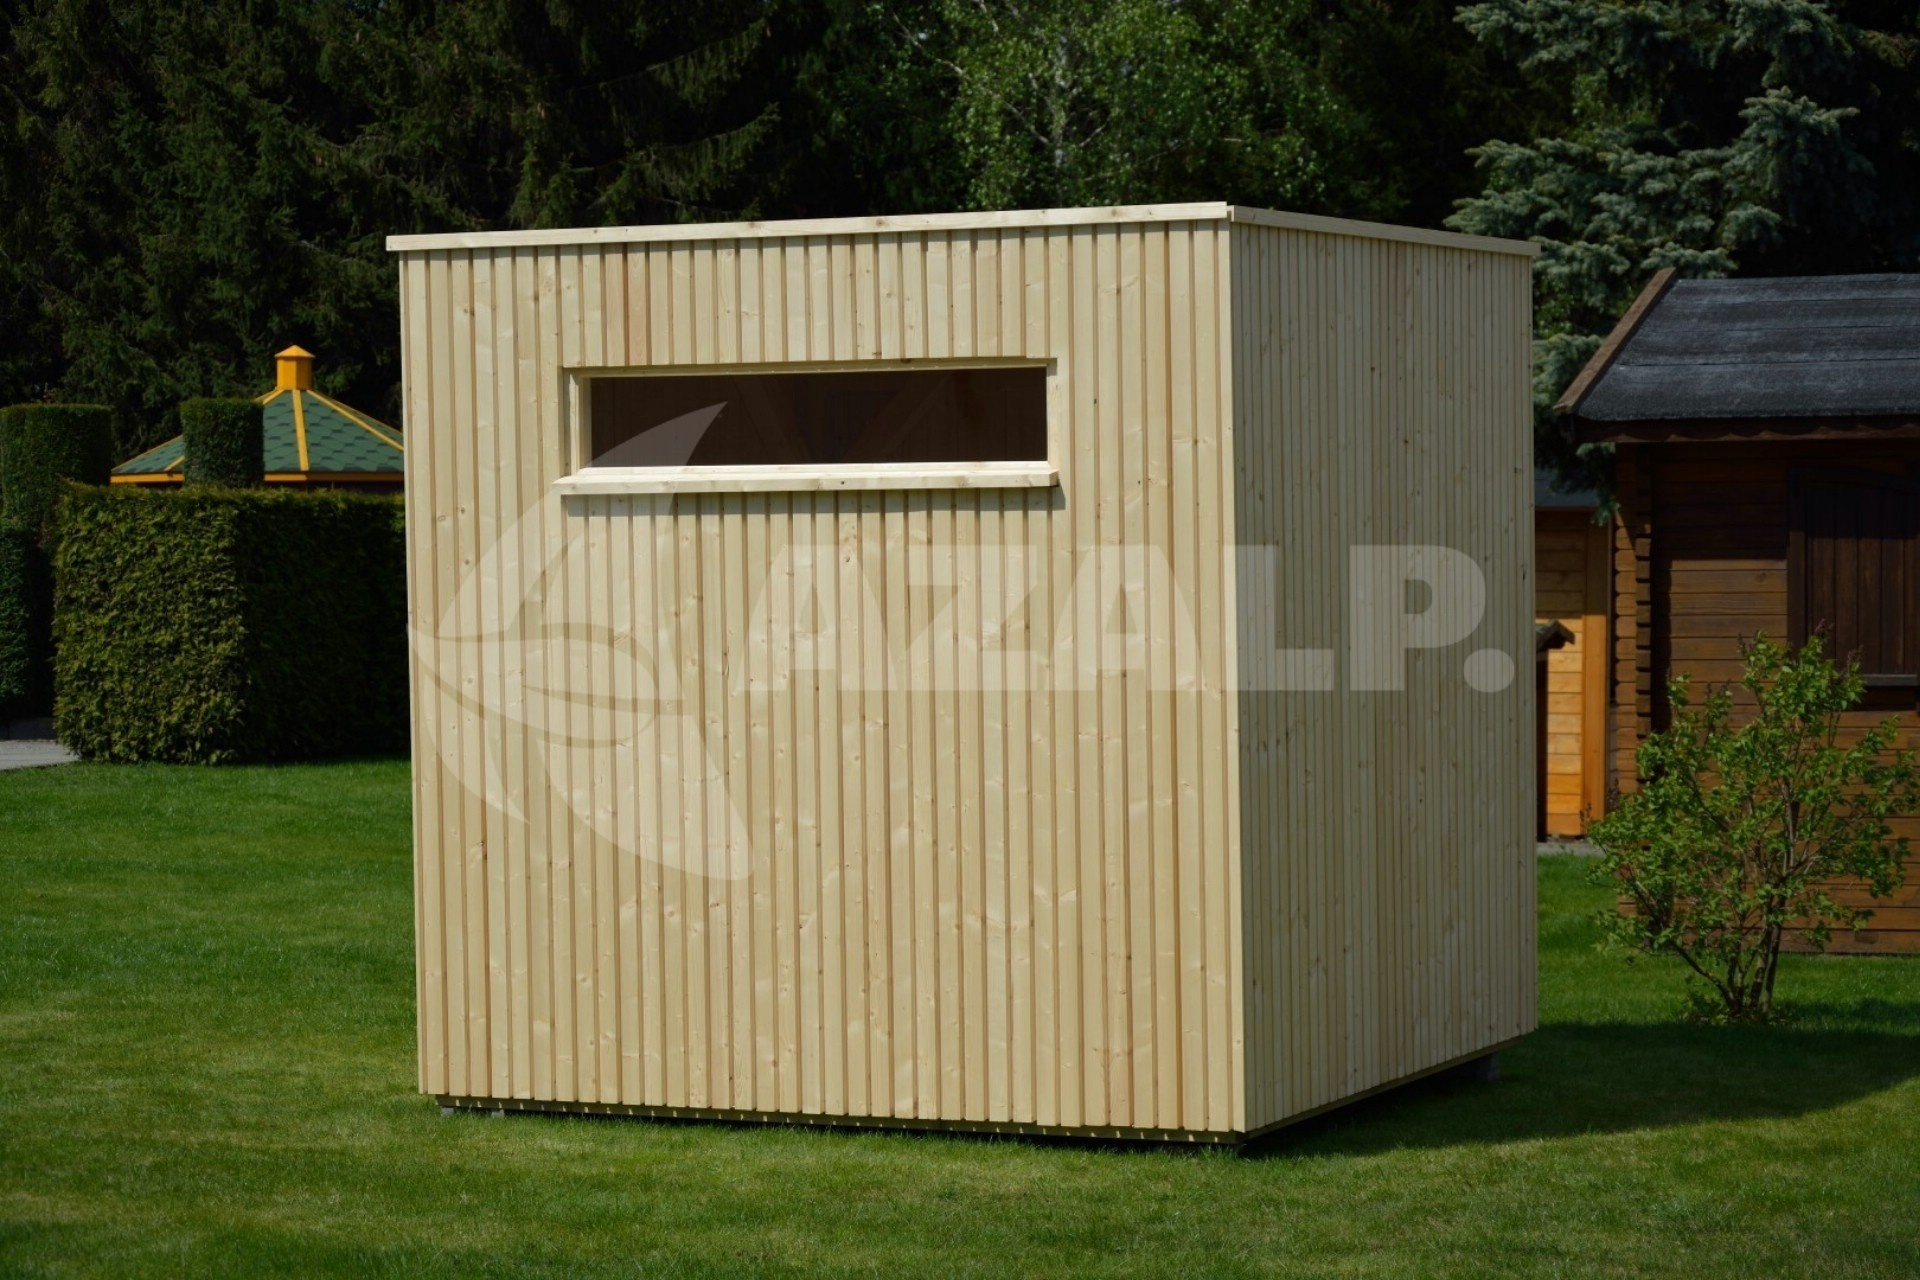 smartshed gartenhaus kuba 4035 kaufen bei. Black Bedroom Furniture Sets. Home Design Ideas